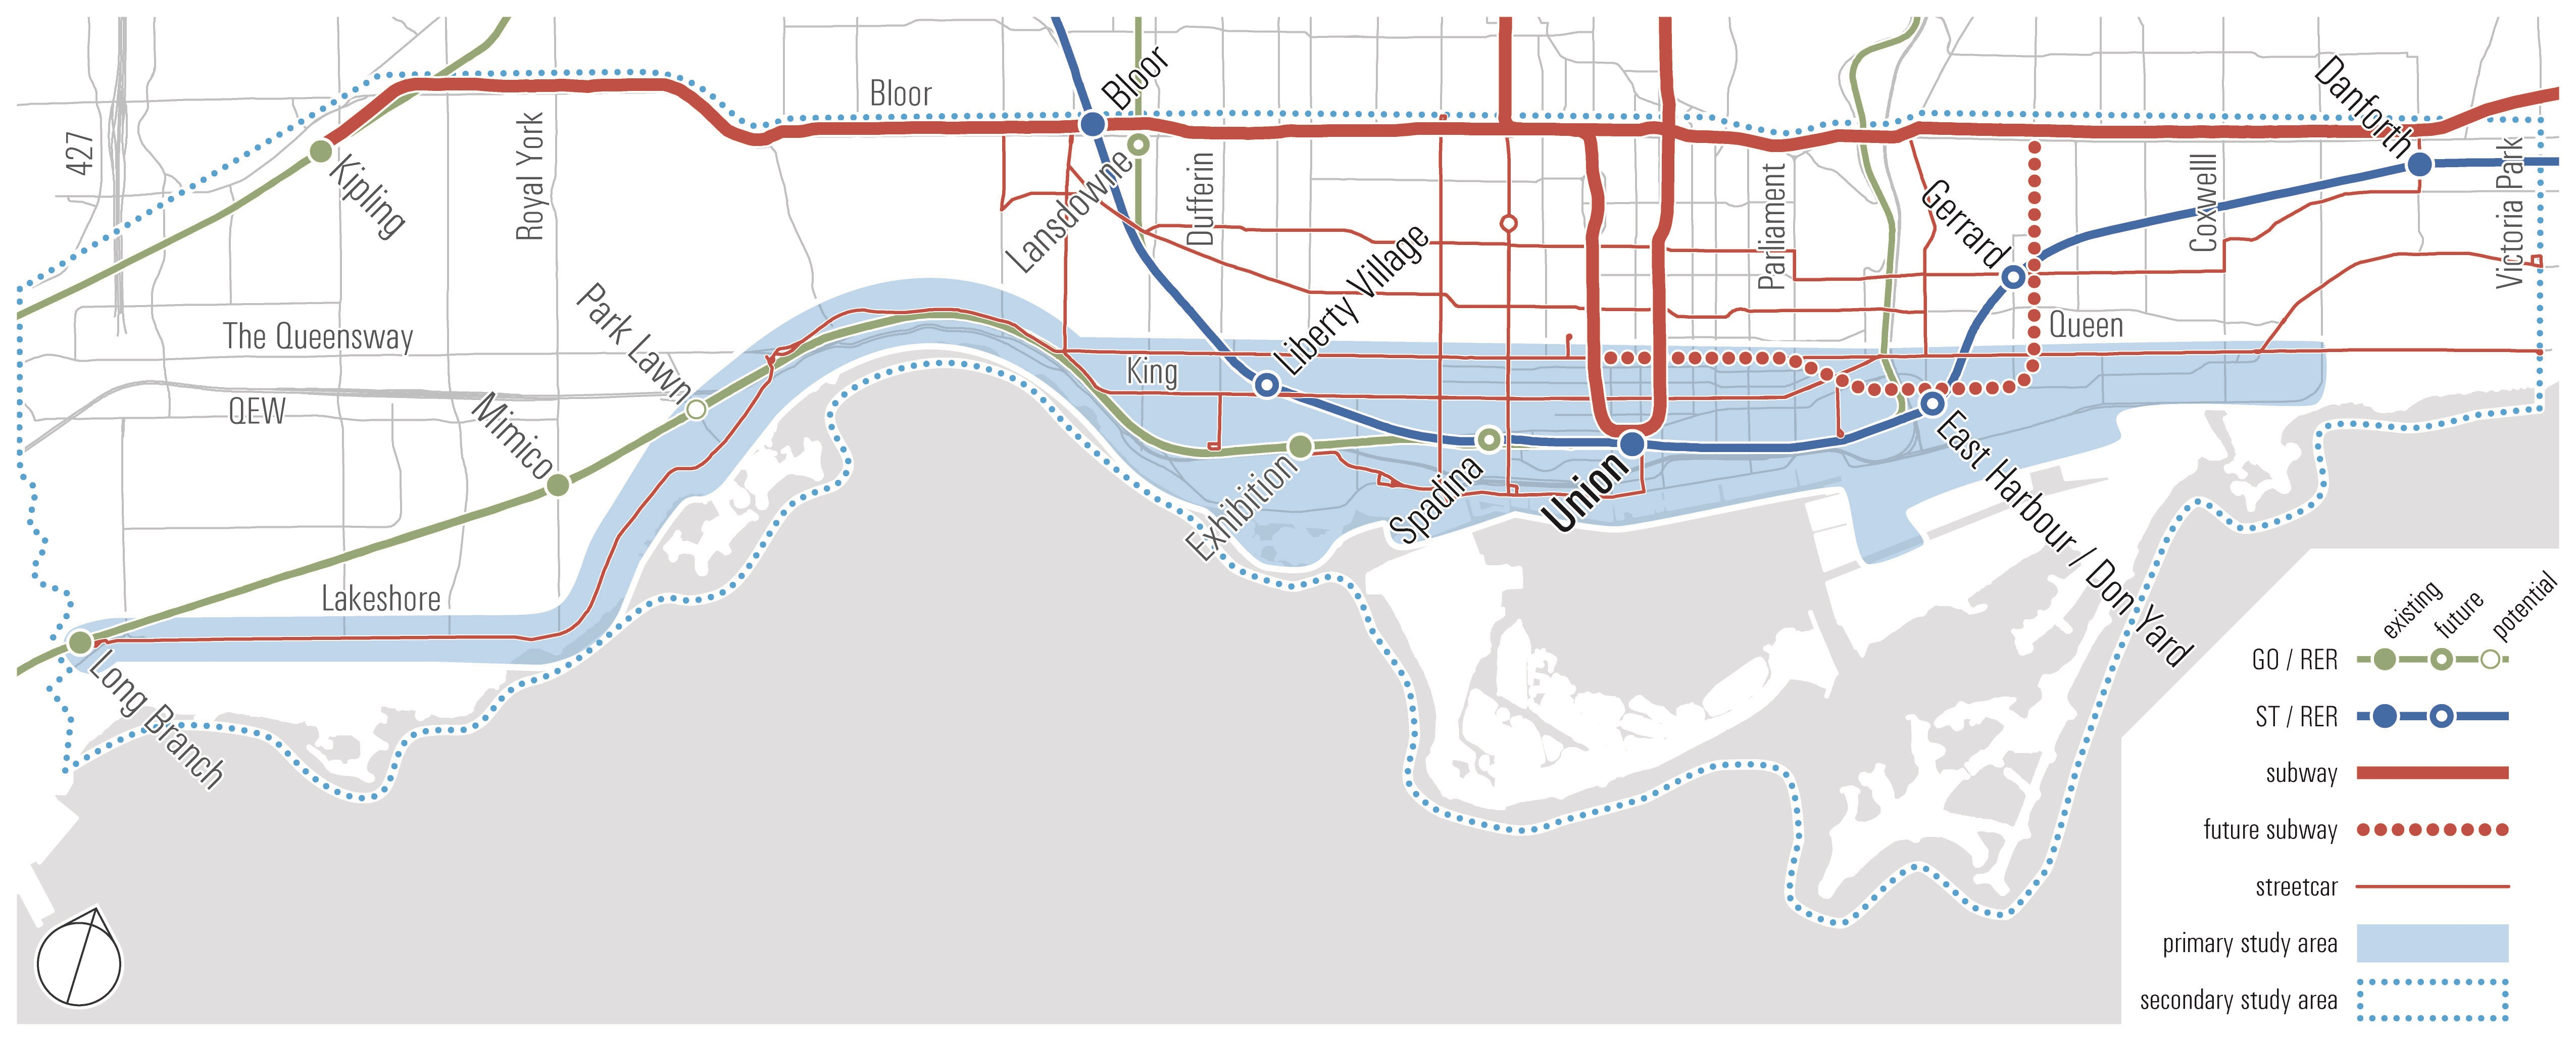 Toronto's waterfront is currently undergoing a significant transformation, with rapid growth in many precincts along the water's edge including Mimico, Humber Bay Shores, Liberty Village, Fort York, King/Spadina, City Place, South Core, and King/Parliament.